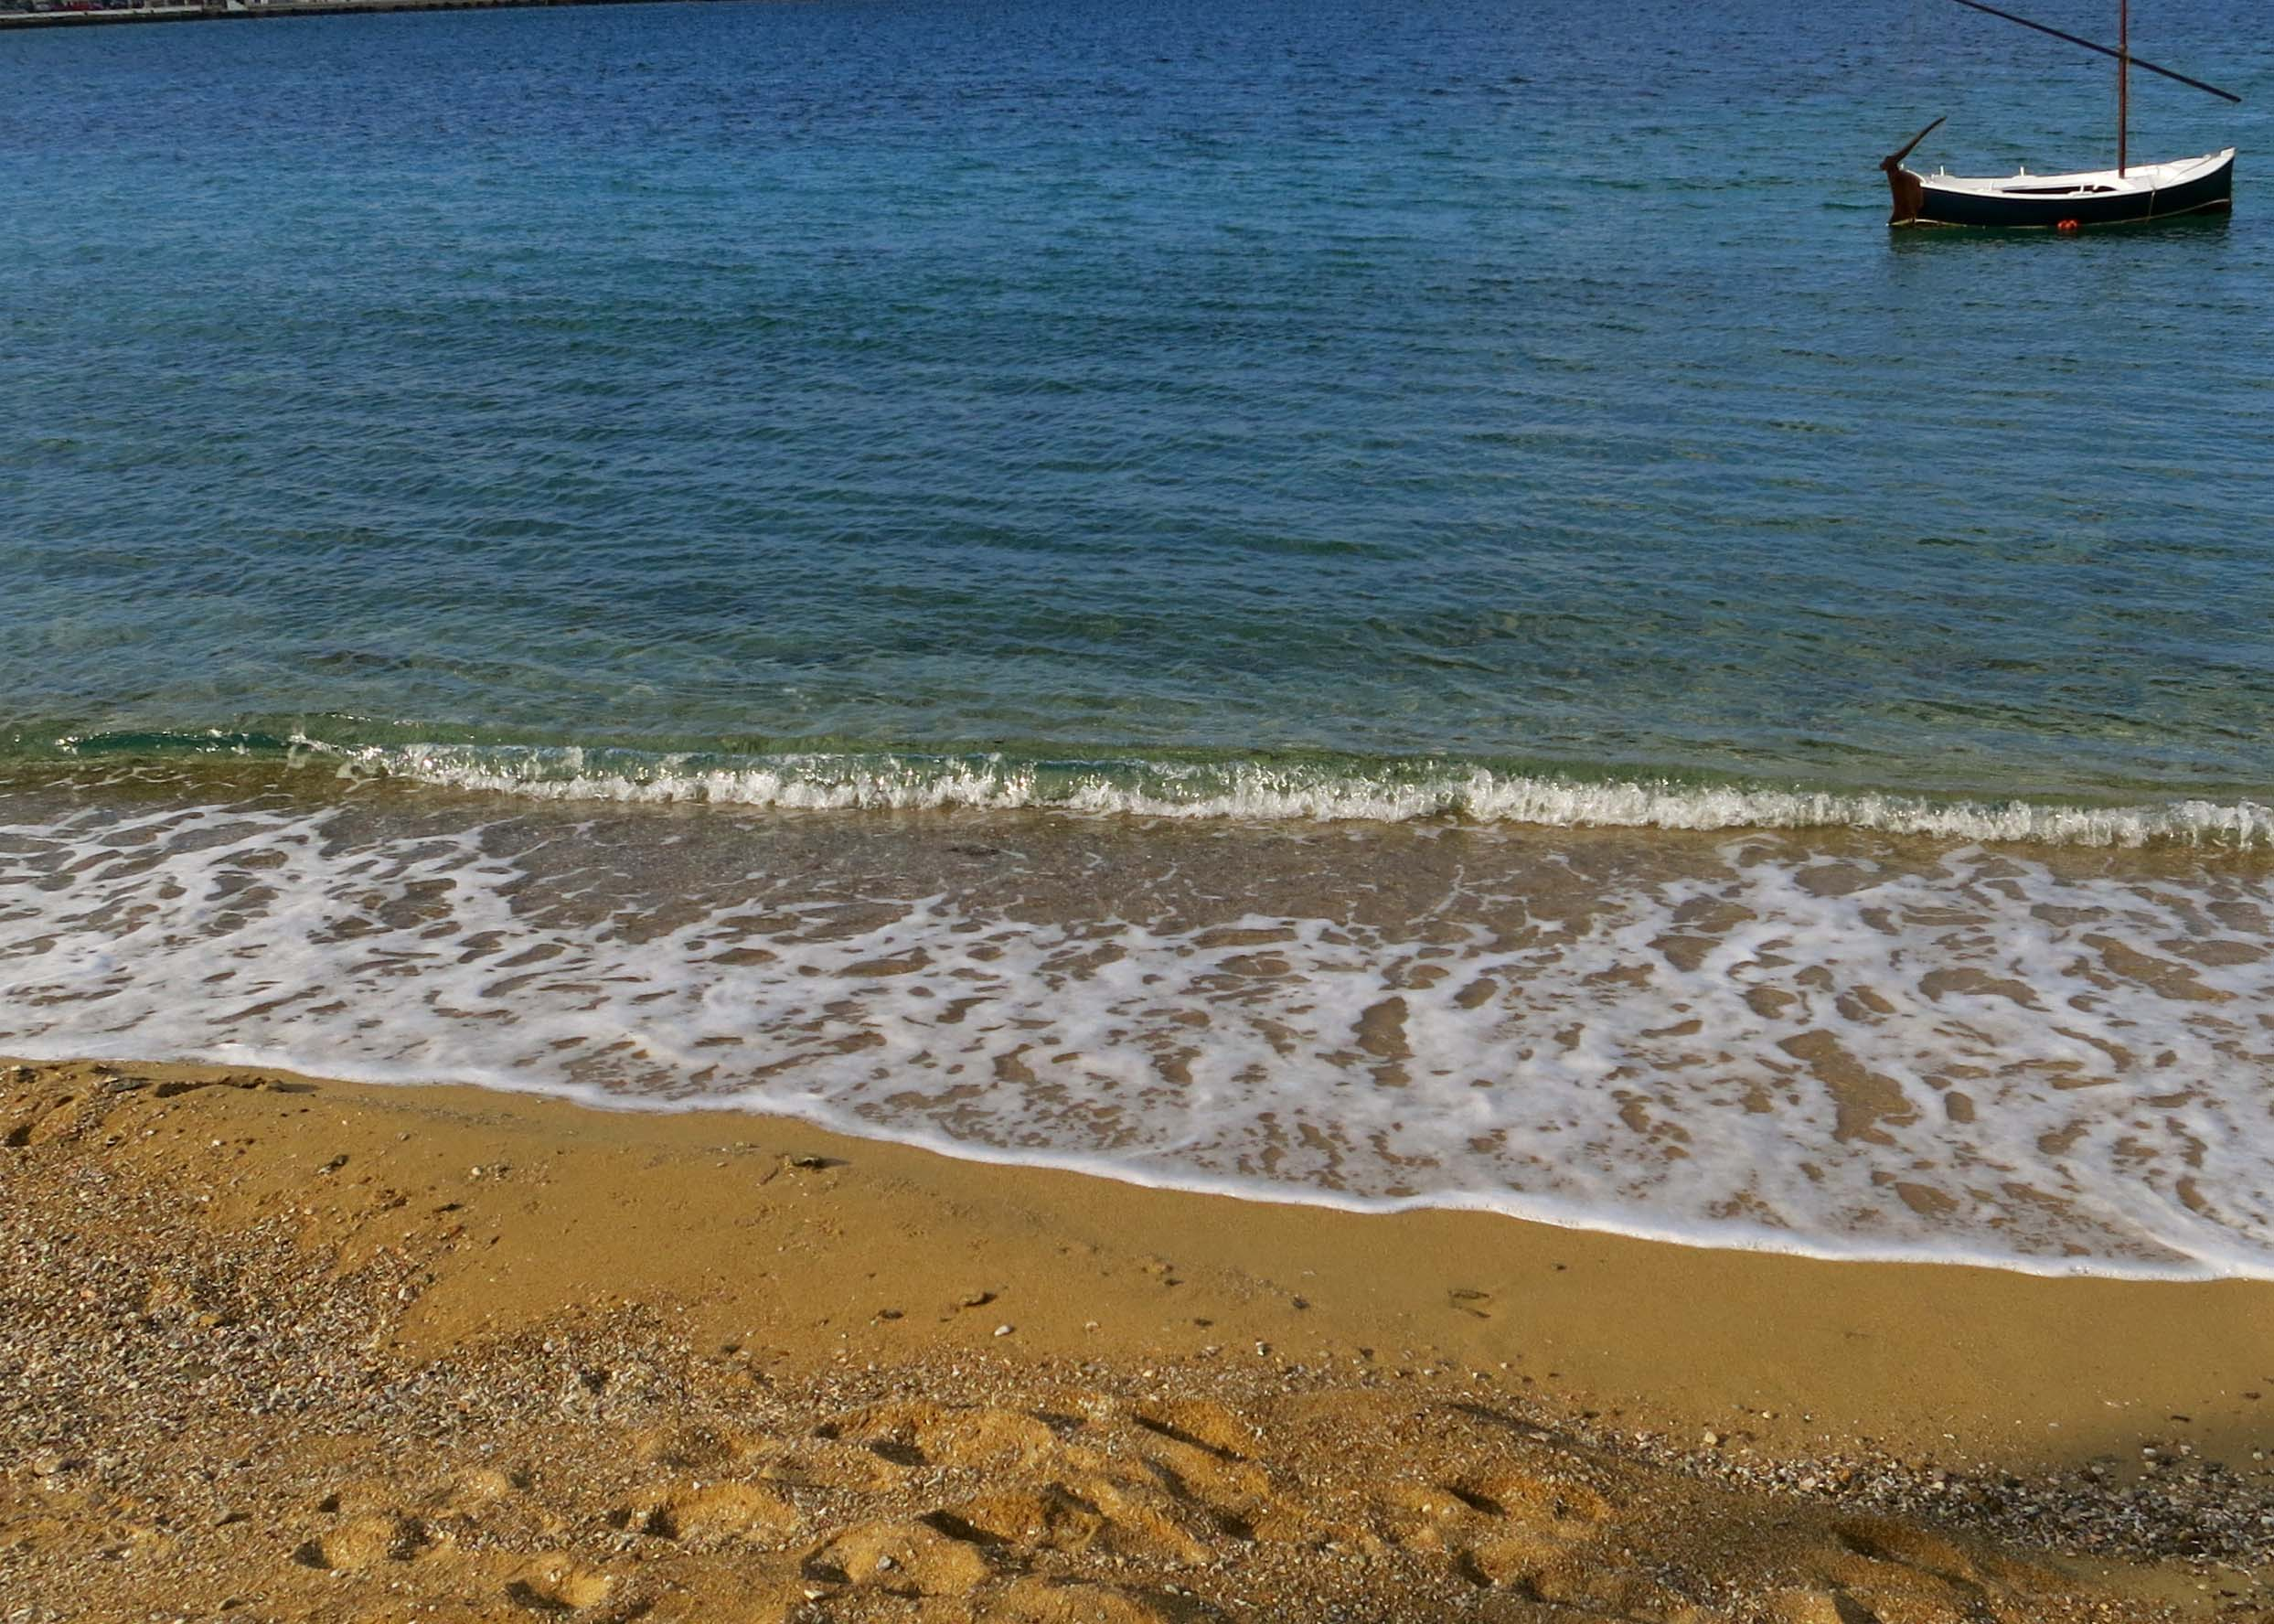 The golden sands and blue waters of the Aegean Sea of the small beach in Mykonos.